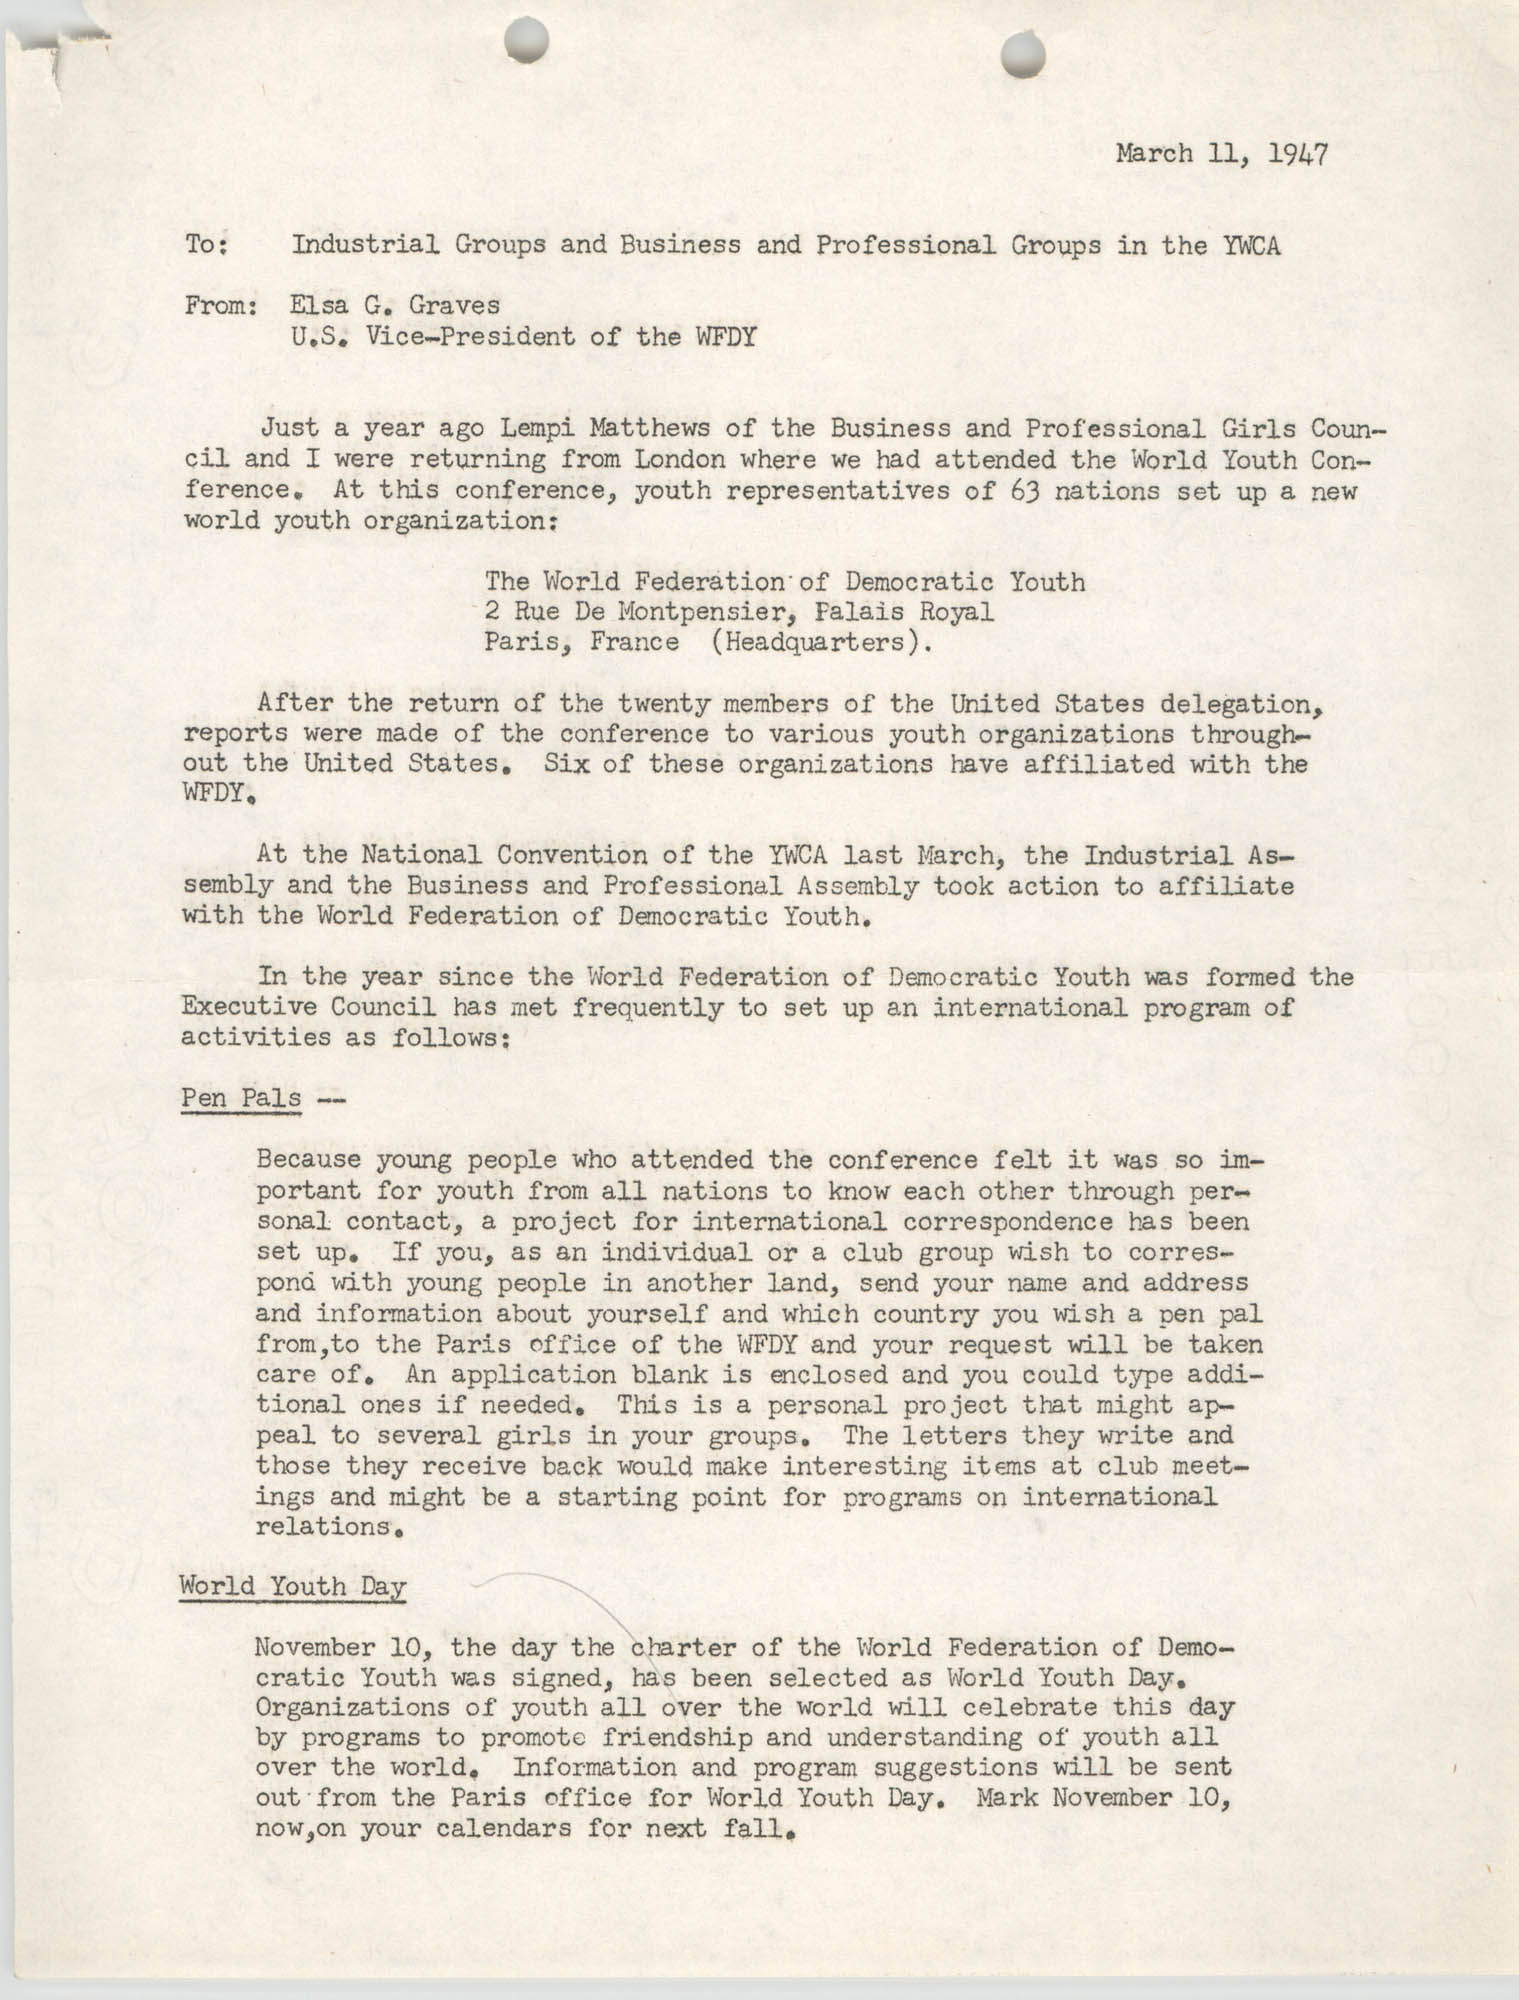 National Board of the Y.W.C.A. Business and Professional Girls Council Correspondence, 1947, Page 1